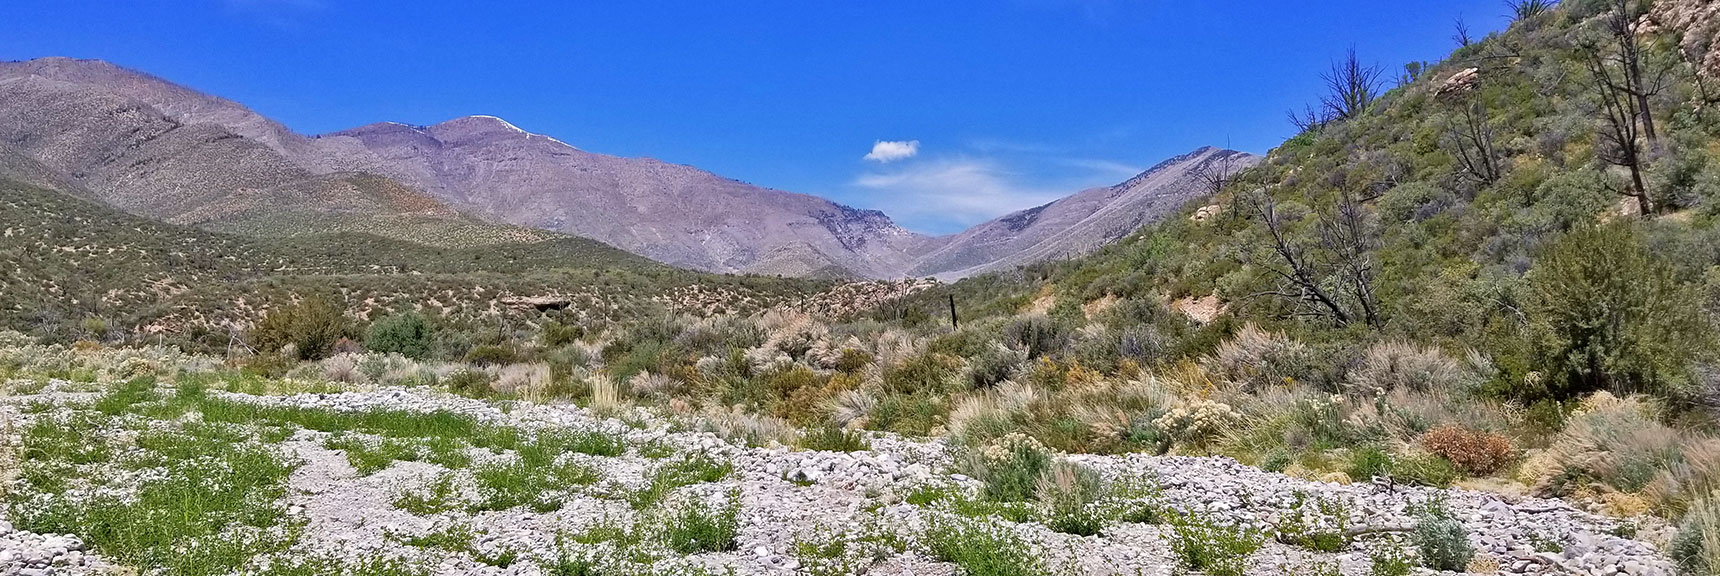 View Up Lowell Canyon, Lovell Canyon Trail, La Madre Mountains Wilderness, Nevada